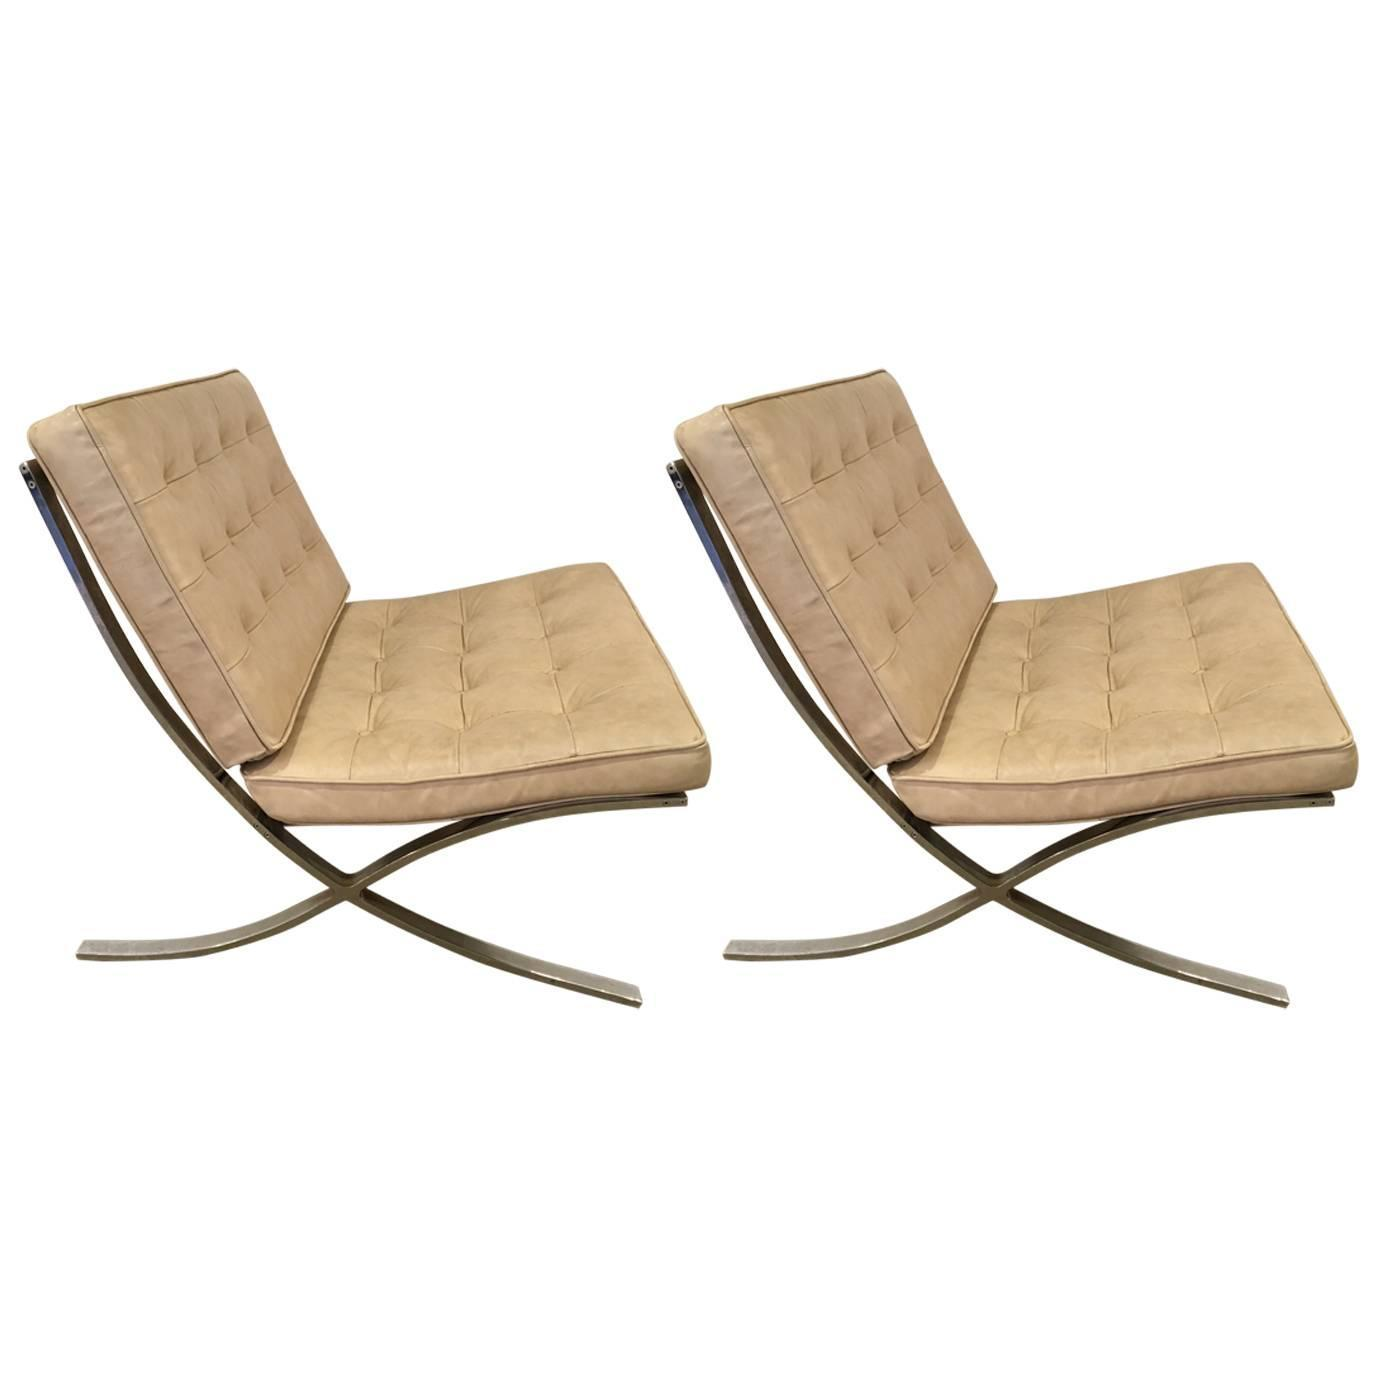 faux barcelona chair. Pair Of Vintage Barcelona Chairs, Mies Van Der Rohe Faux Chair